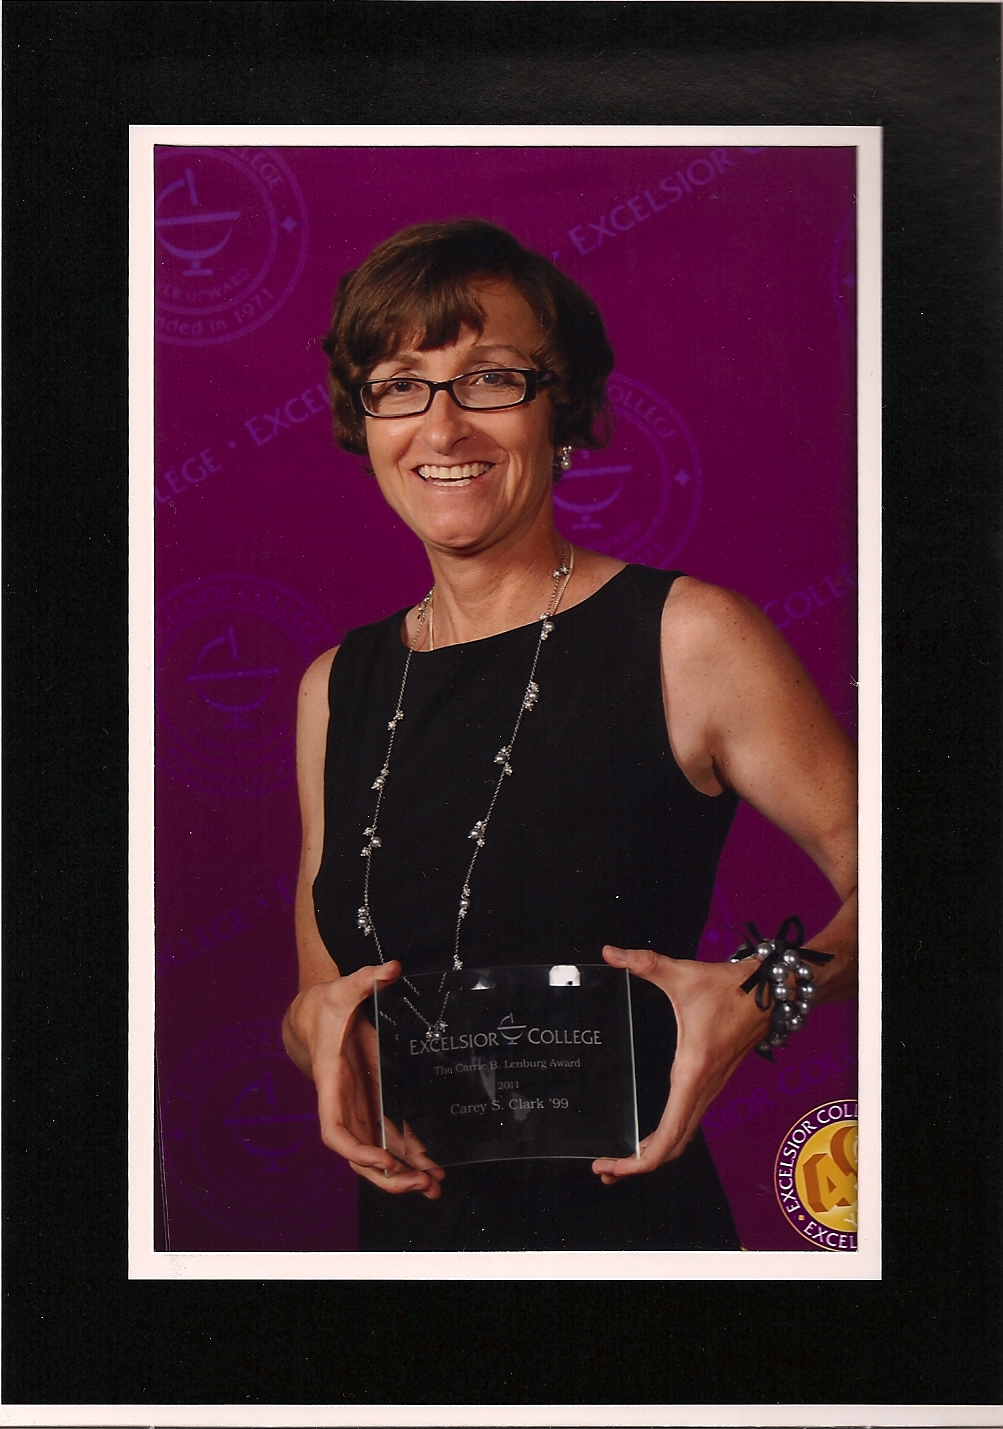 Reflections On The Carrie Lenburg Award And Non